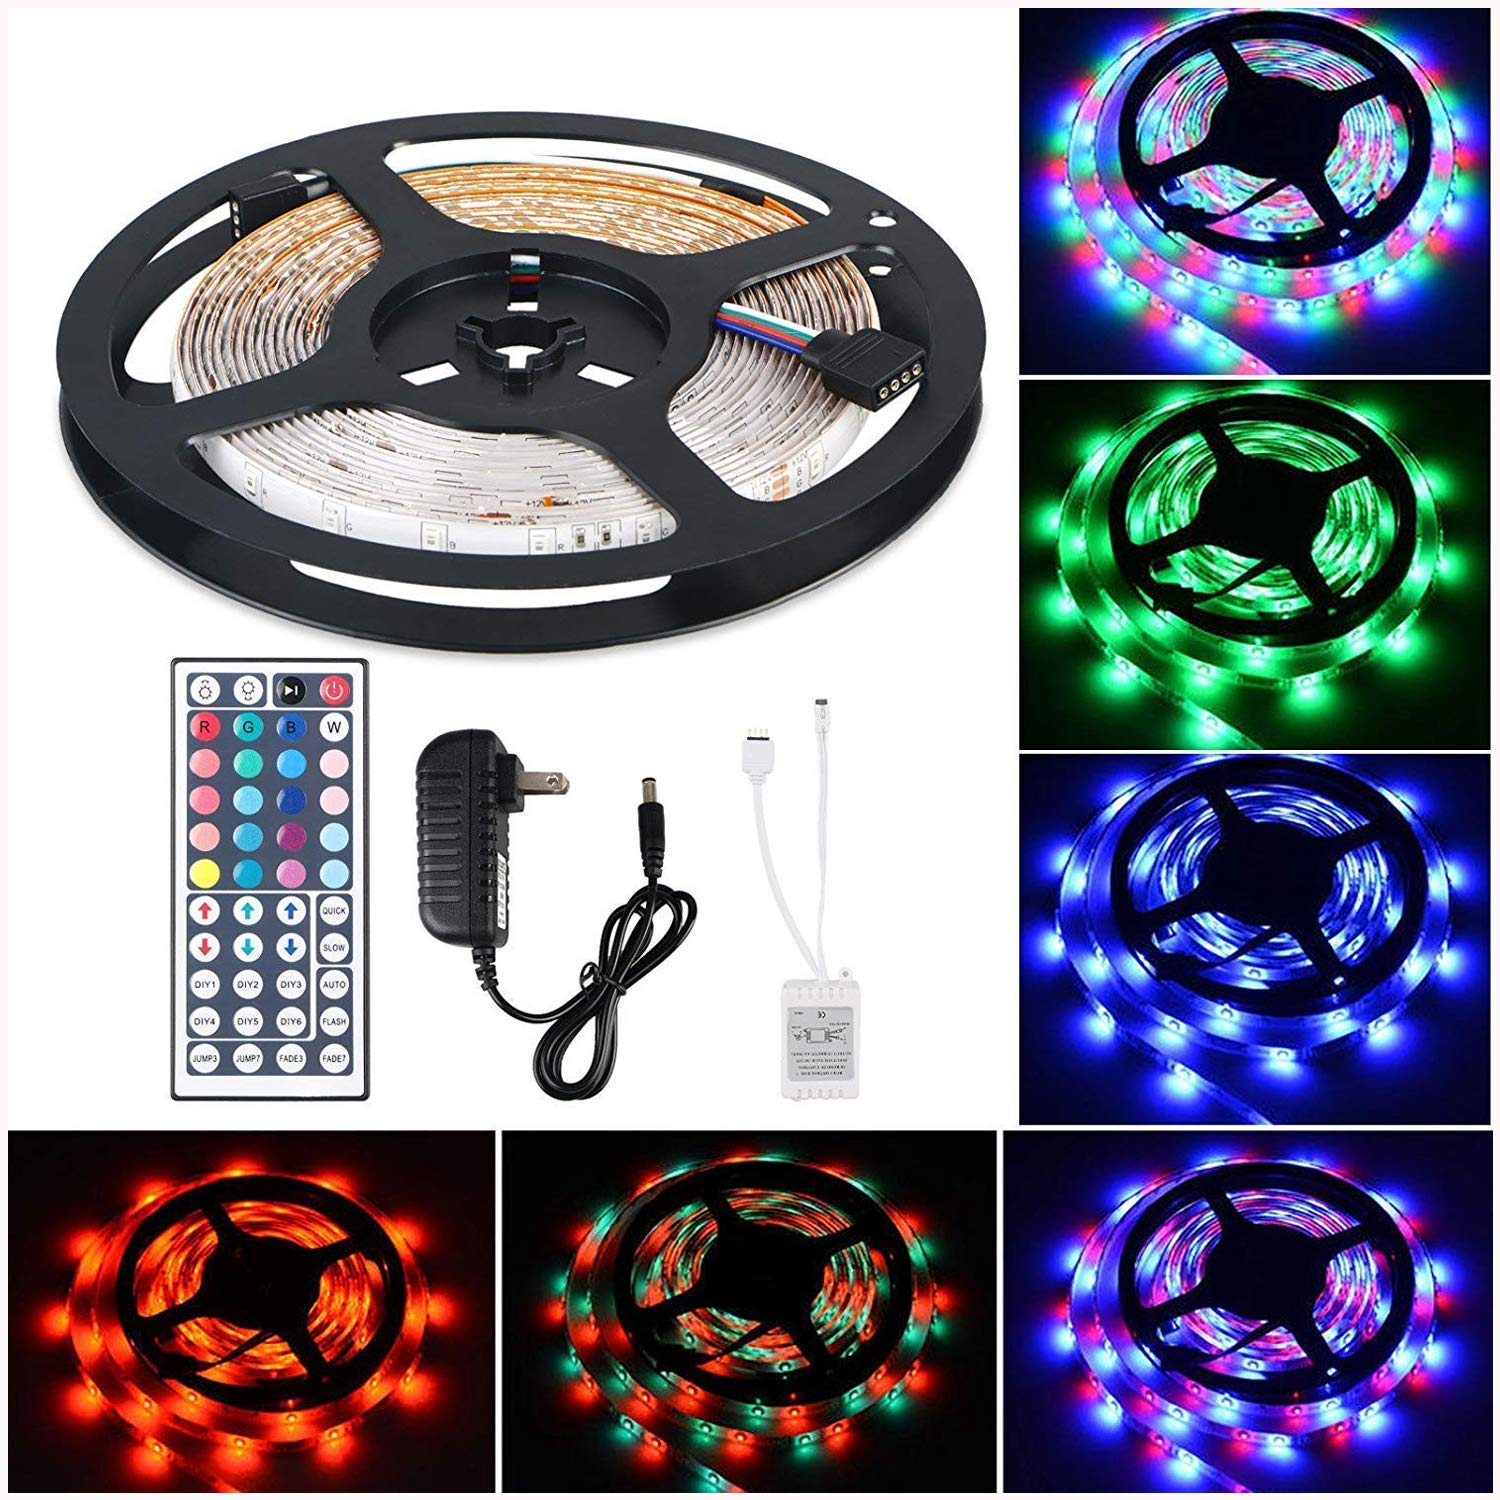 LinkStyle Flexible LED Strip Light Kit 16.4Ft LED Rope Lights 300 LED Tape Light, Color Changing RGB LED Strip Lights & 44Key Remote Controller and 12V Power Supply for DIY Bedroom Home Bar Party by LinkStyle